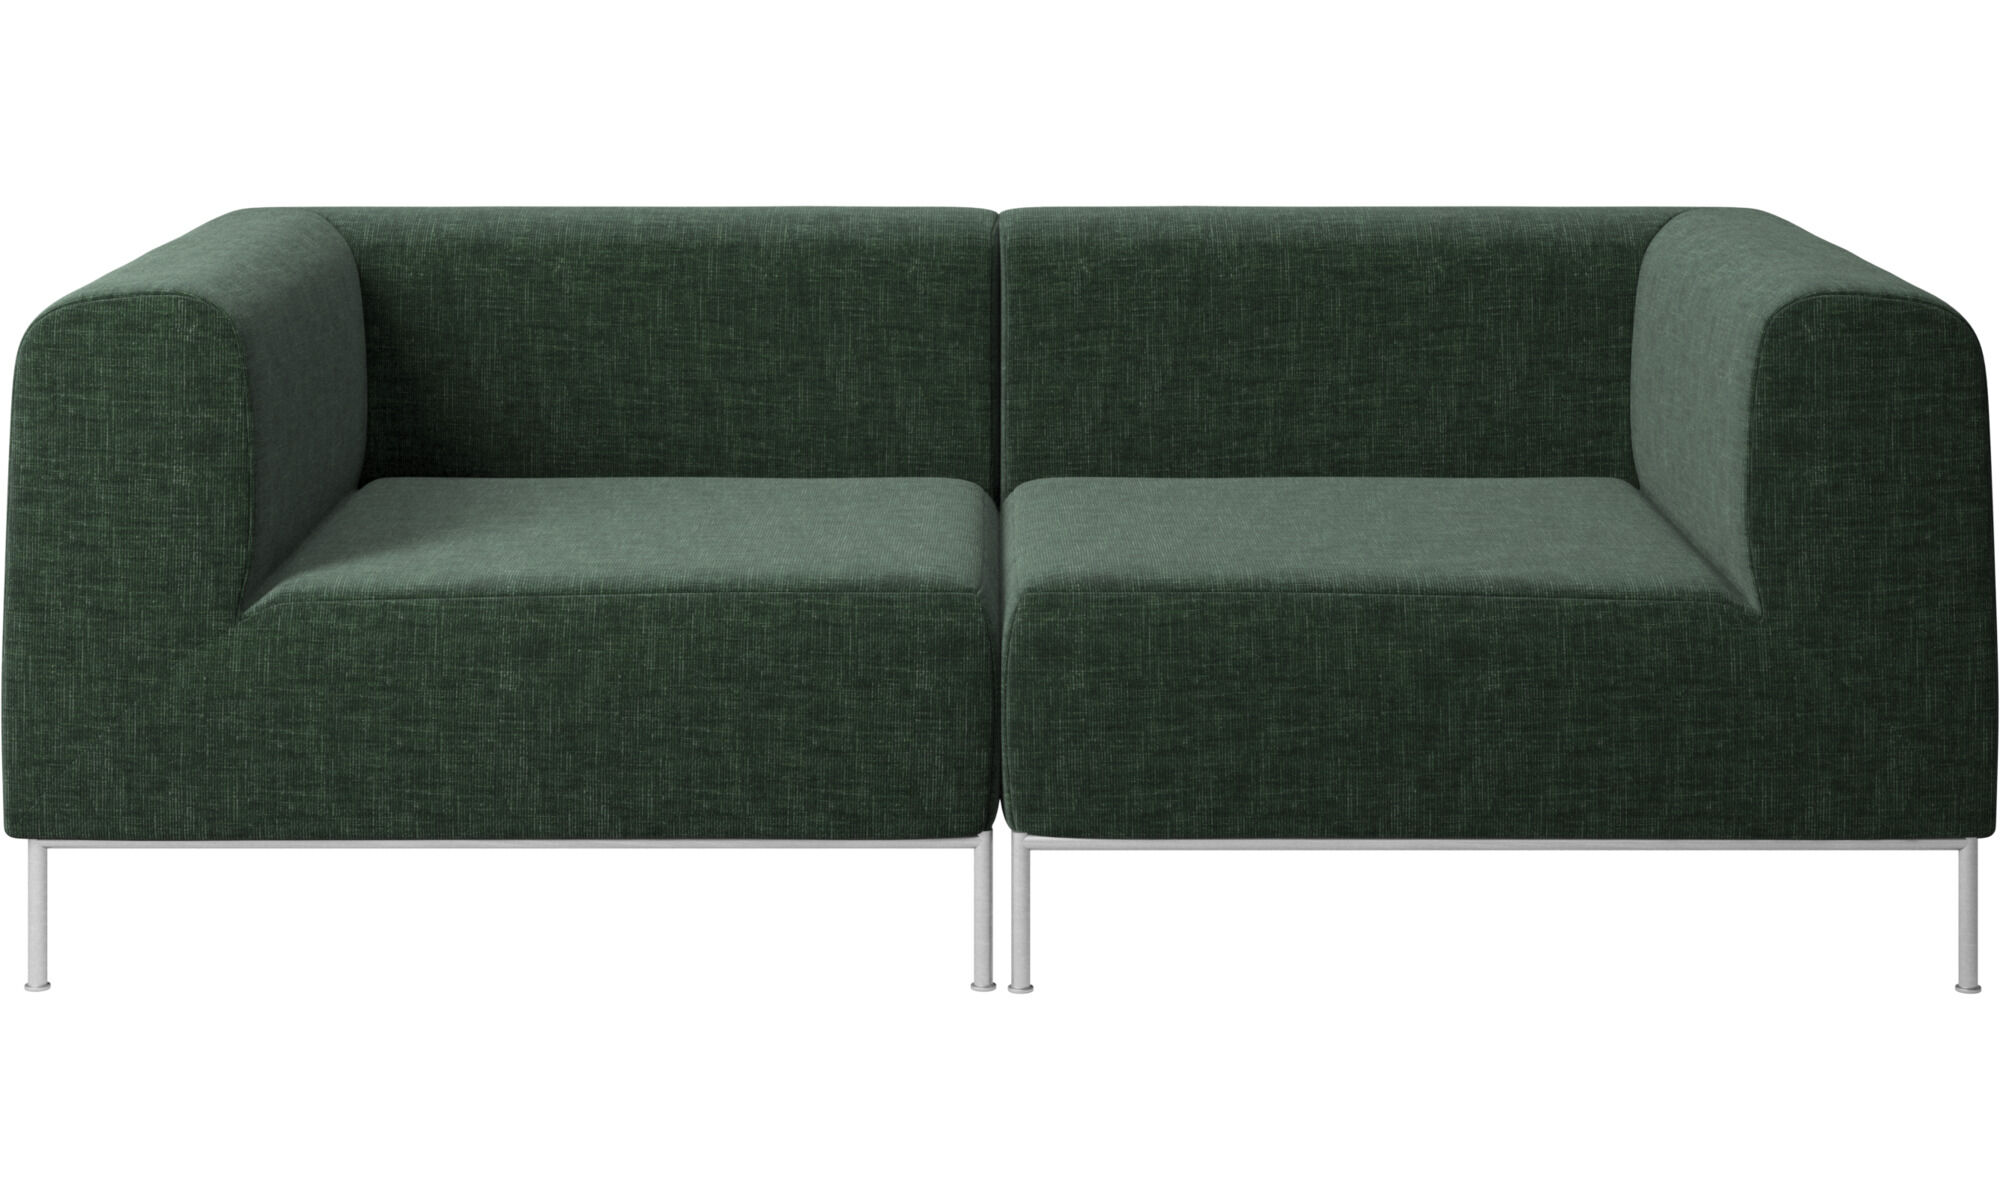 Modular Sofas   Miami Sofa   Green   Fabric ...